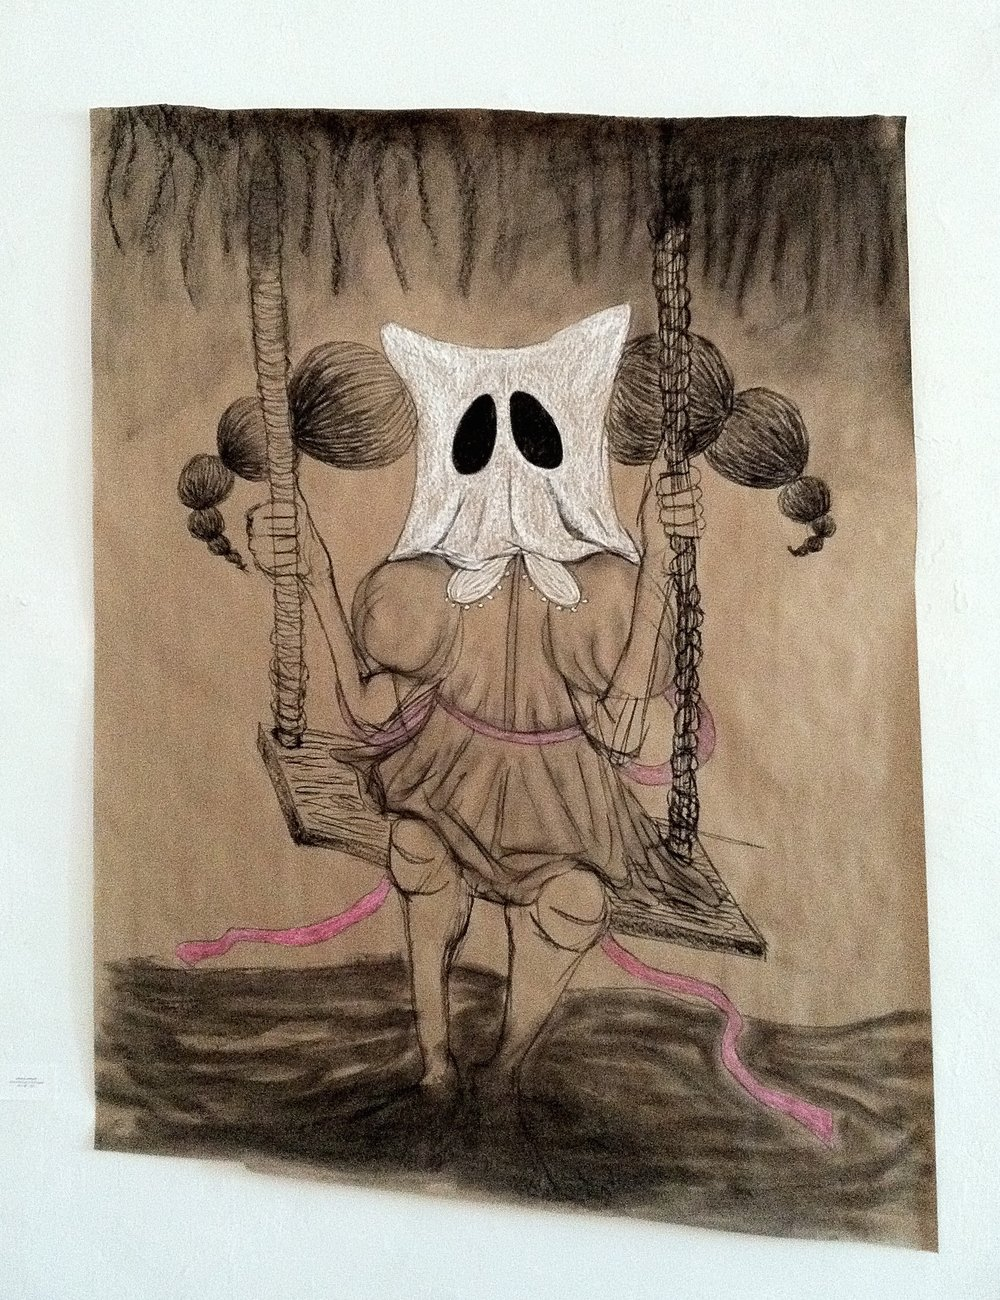 swing lo, sing hi  charcoal/conte on kraft paper 2011